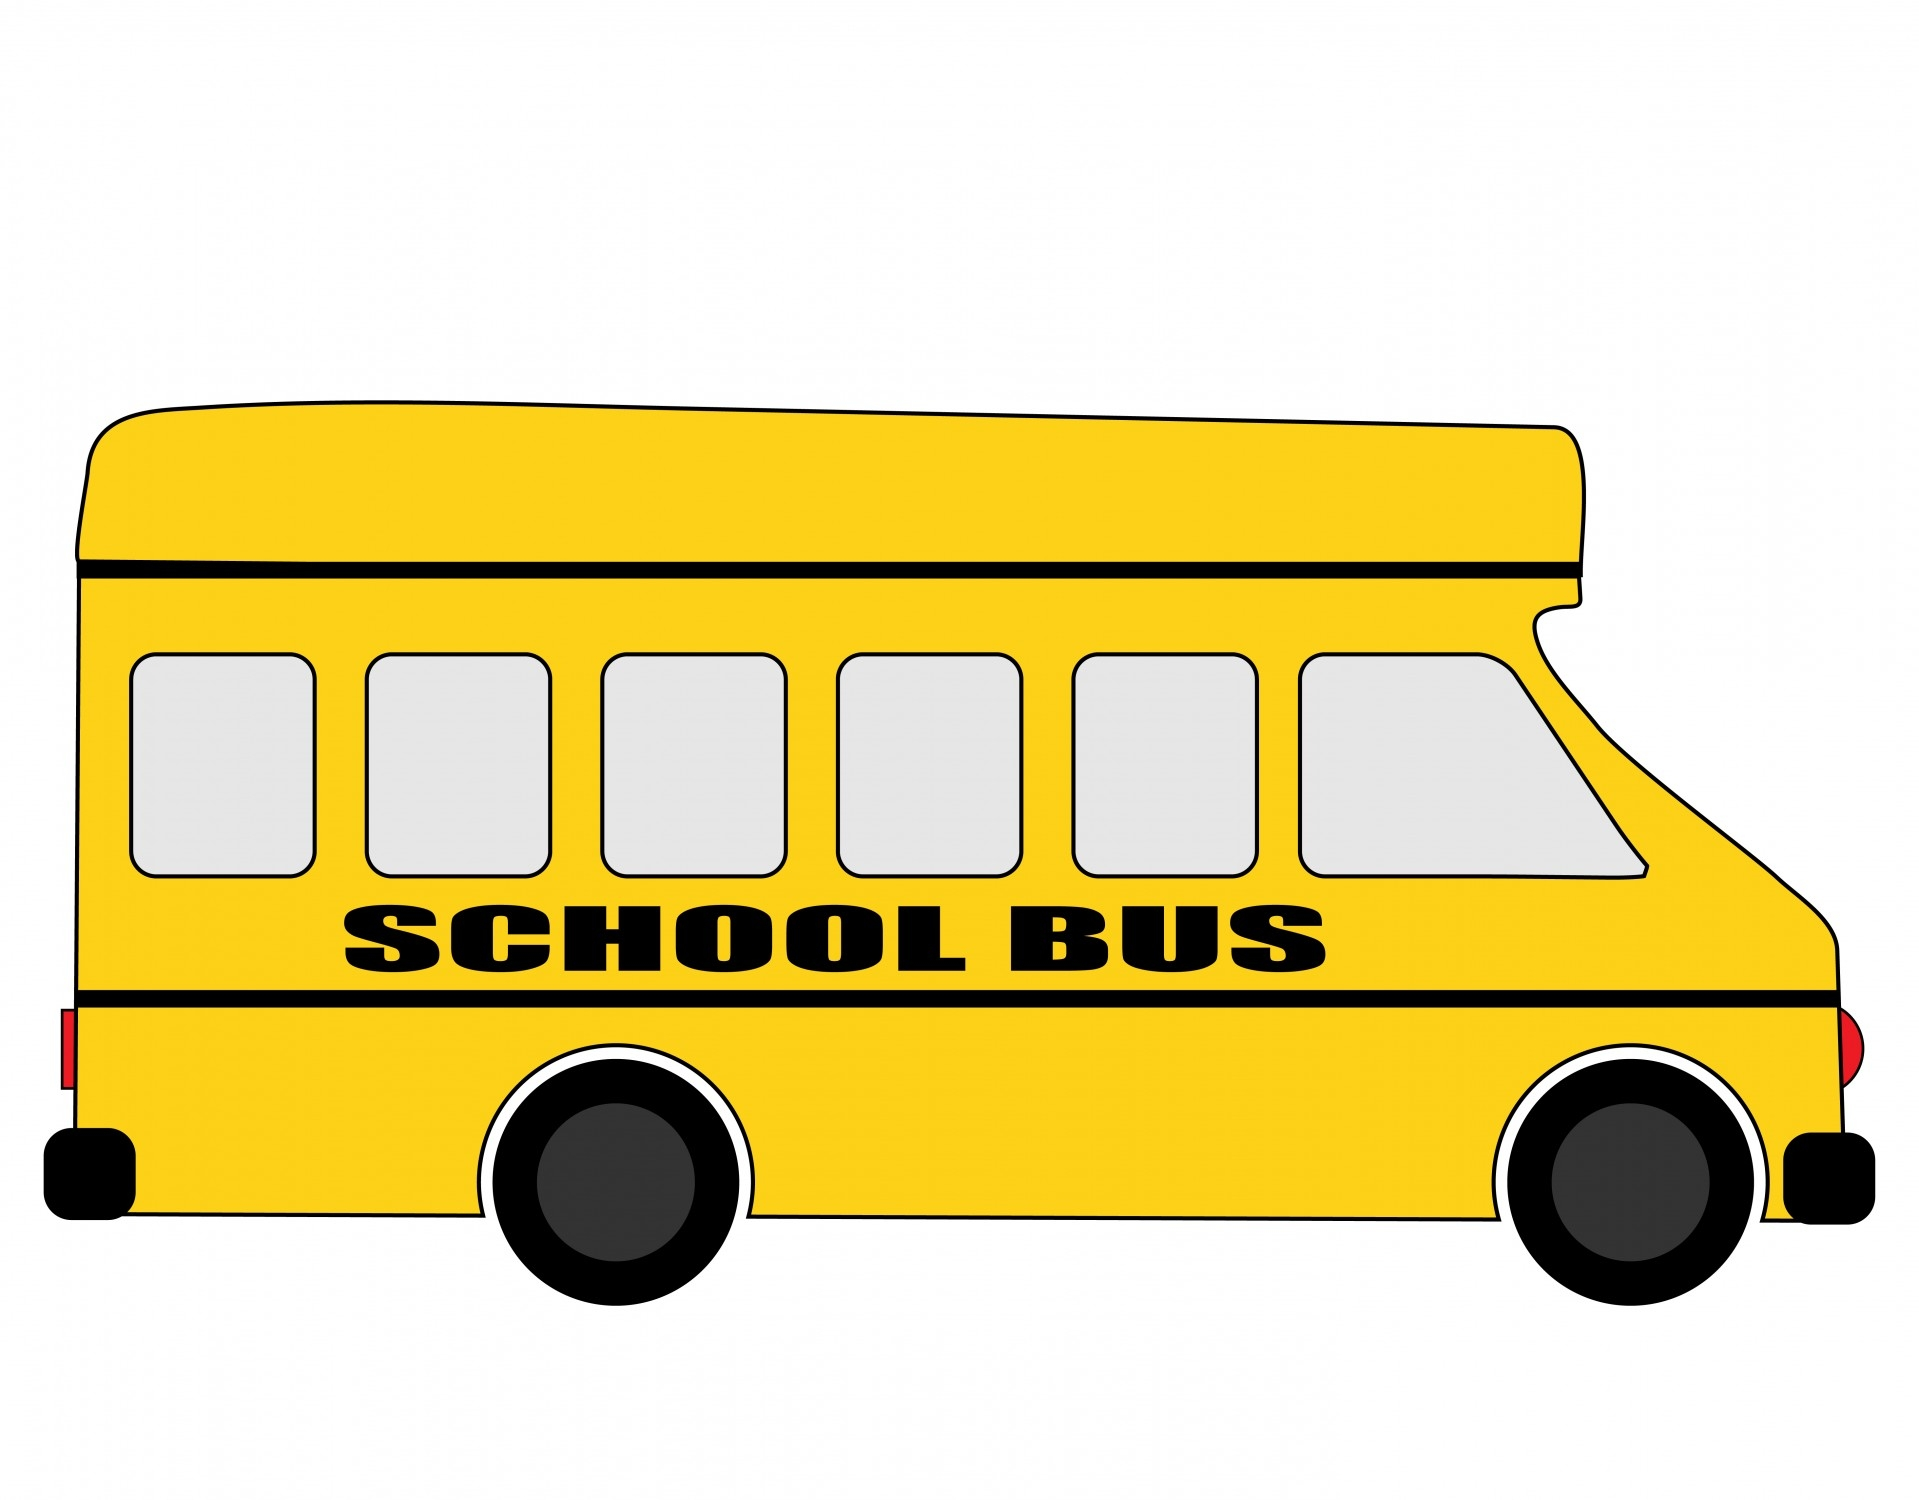 School bus side view right clipart.